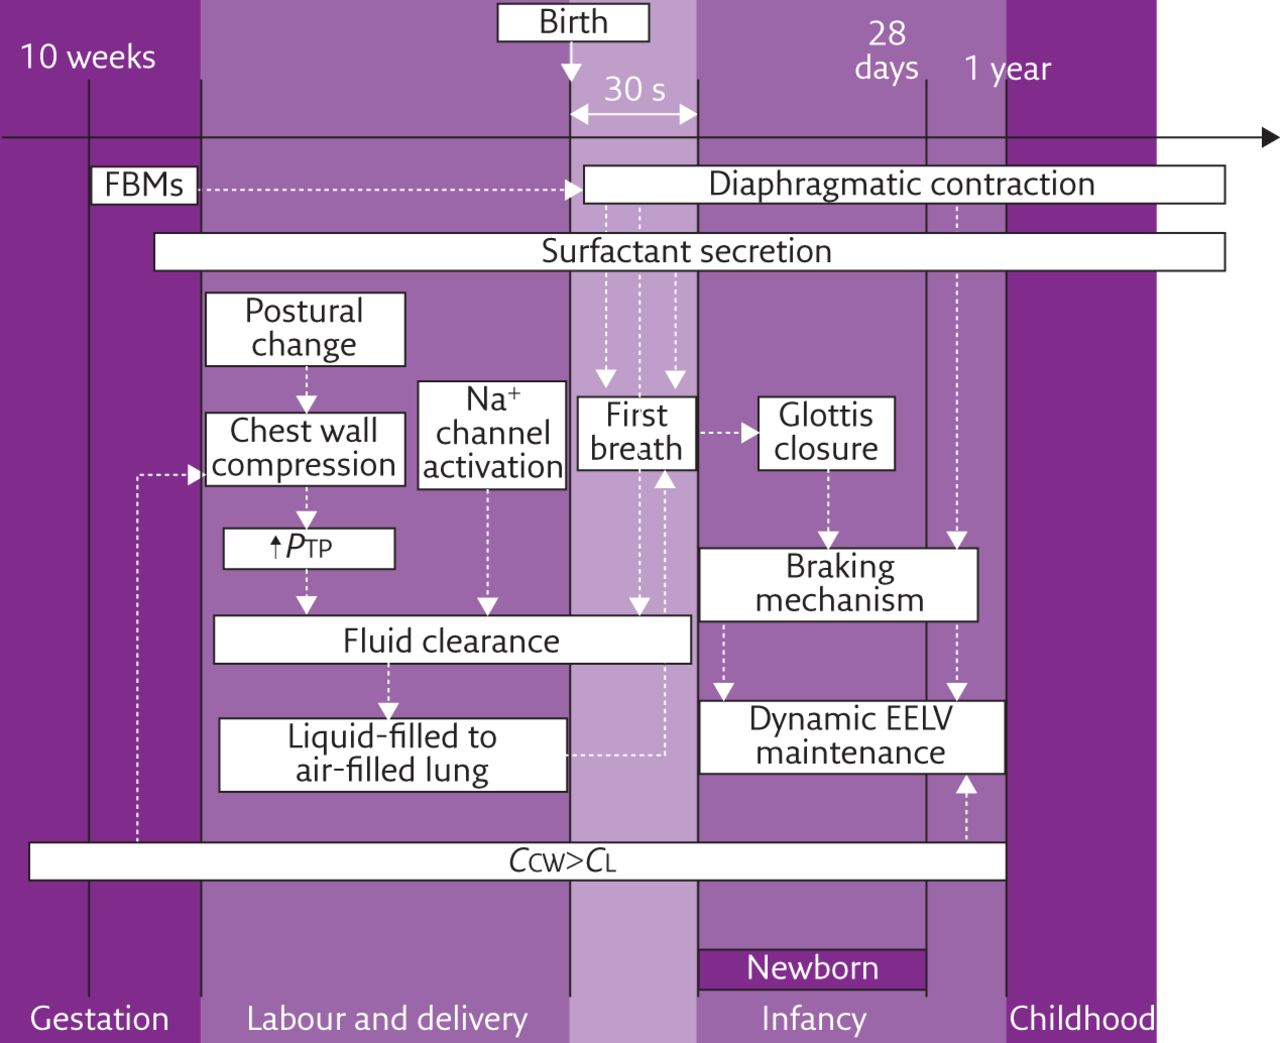 Physiology masterclass: Extremes of age: newborn and infancy ...